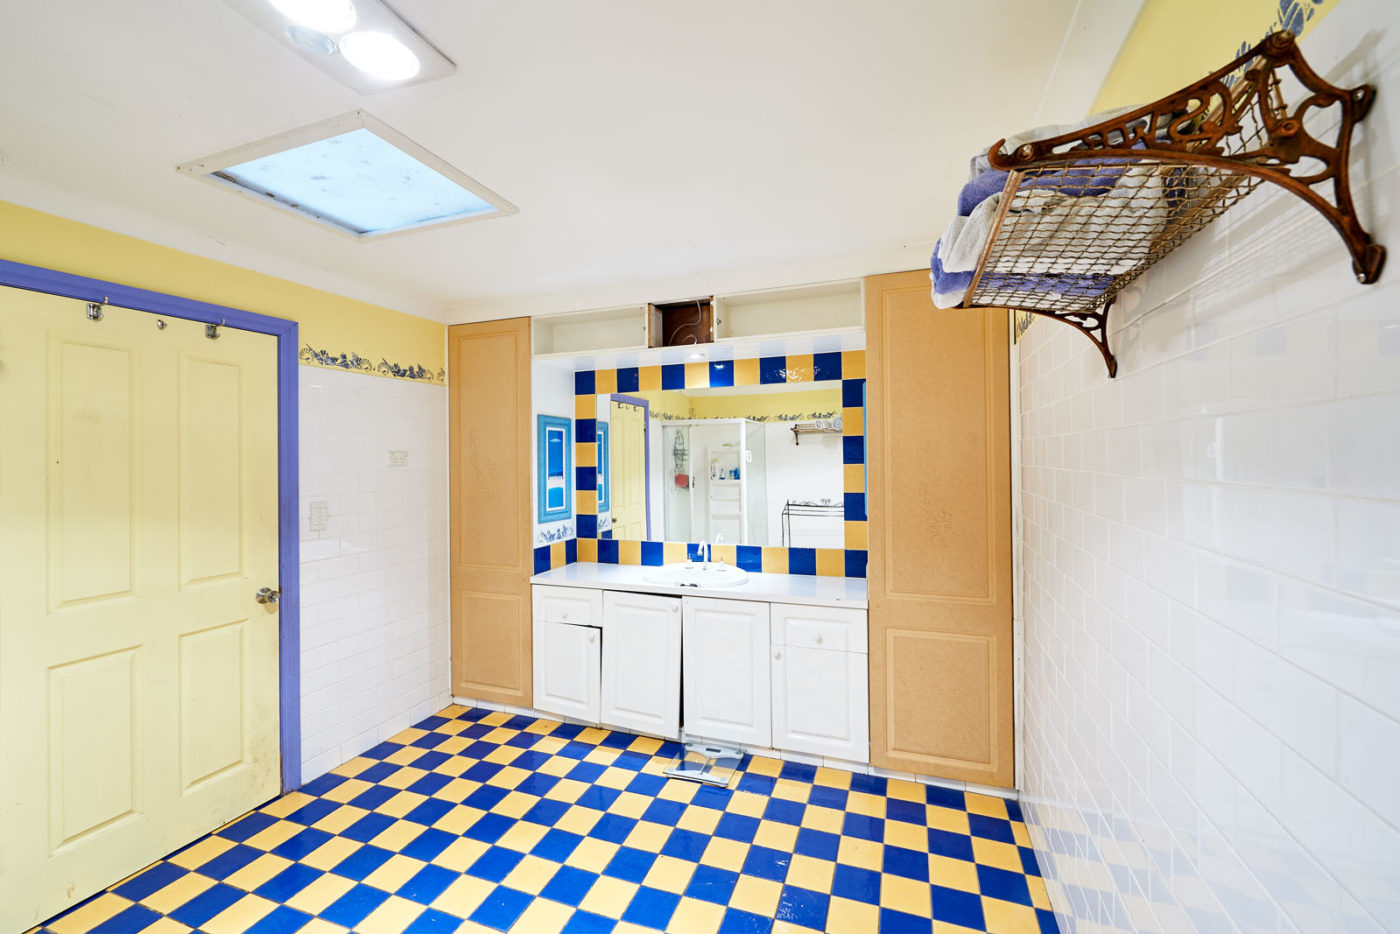 A Bathroom And Kitchen Transformation For 9000